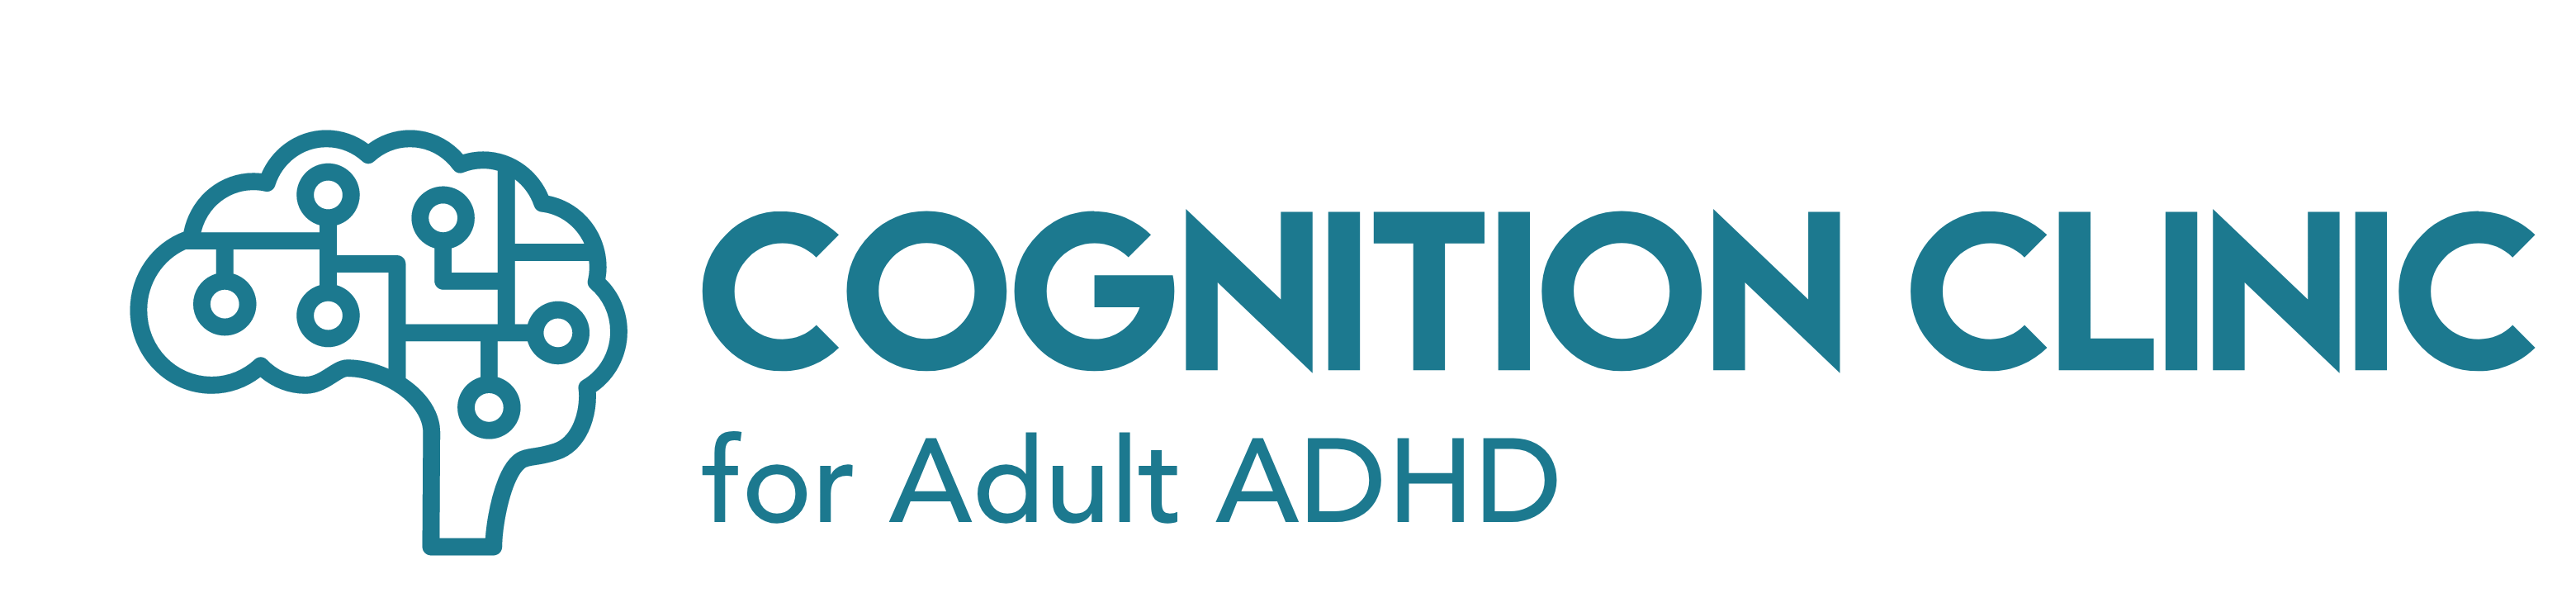 Cognition Clinic for Adult ADHD